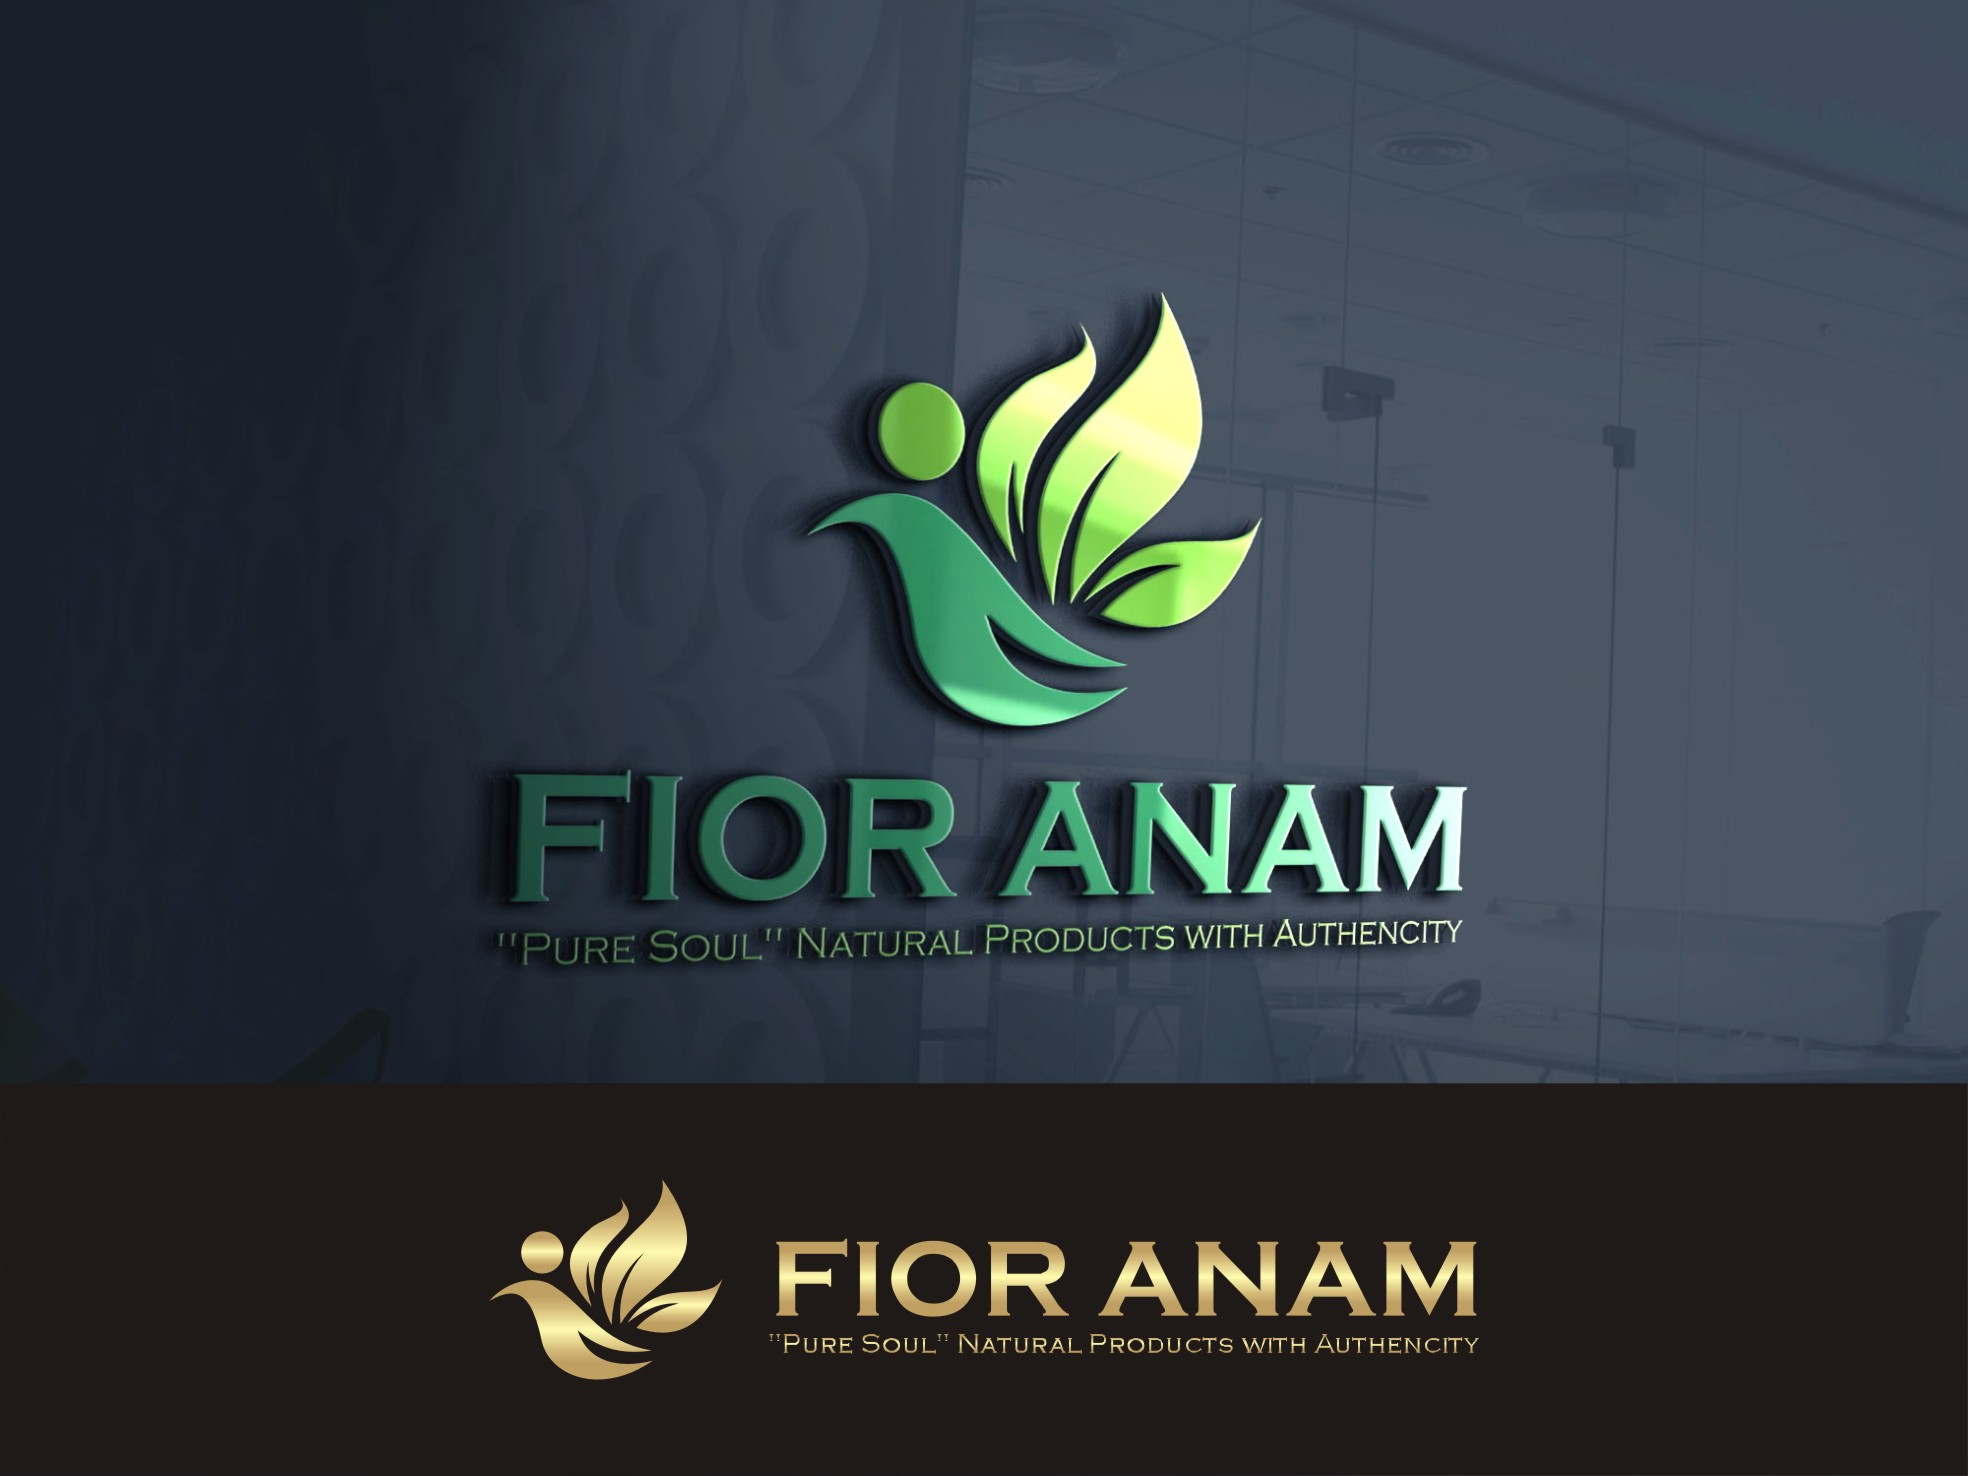 Logo Design by Lynx Graphics - Entry No. 314 in the Logo Design Contest Creative Logo Design for Fior Anam.